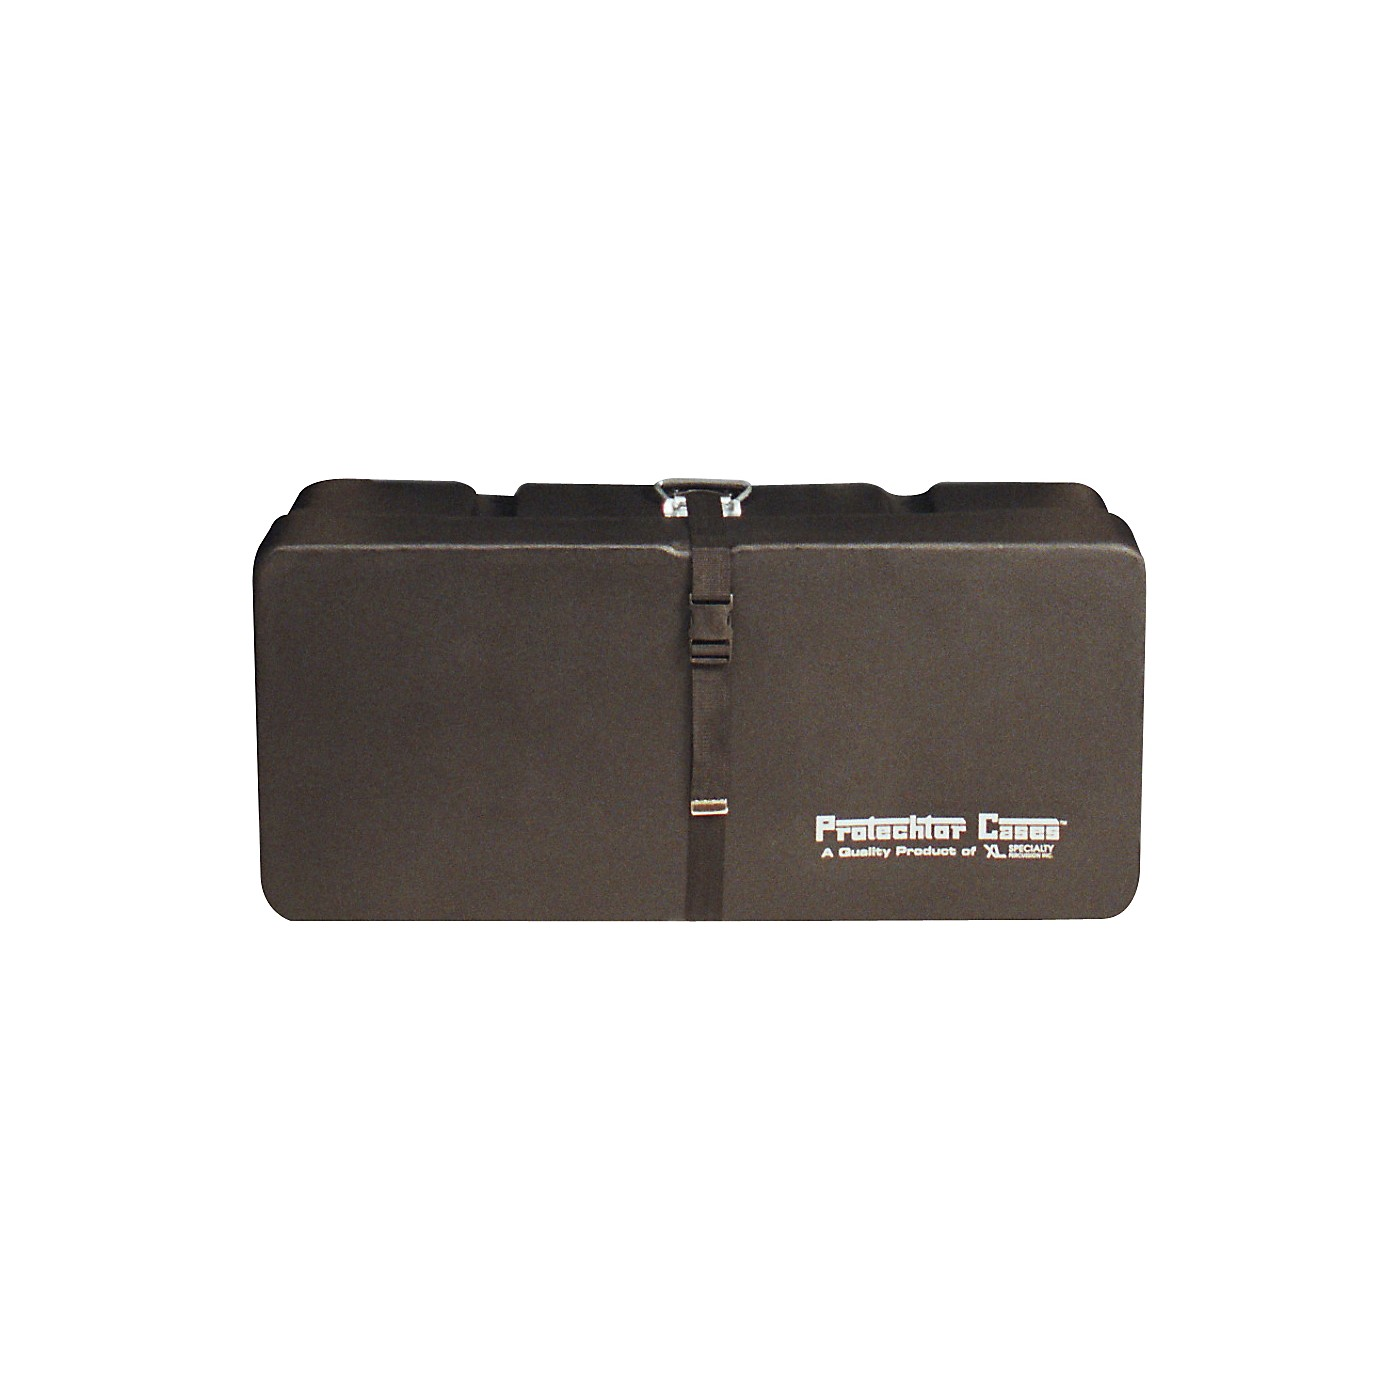 Protechtor Cases Protechtor Classic Compact Accessory Case thumbnail